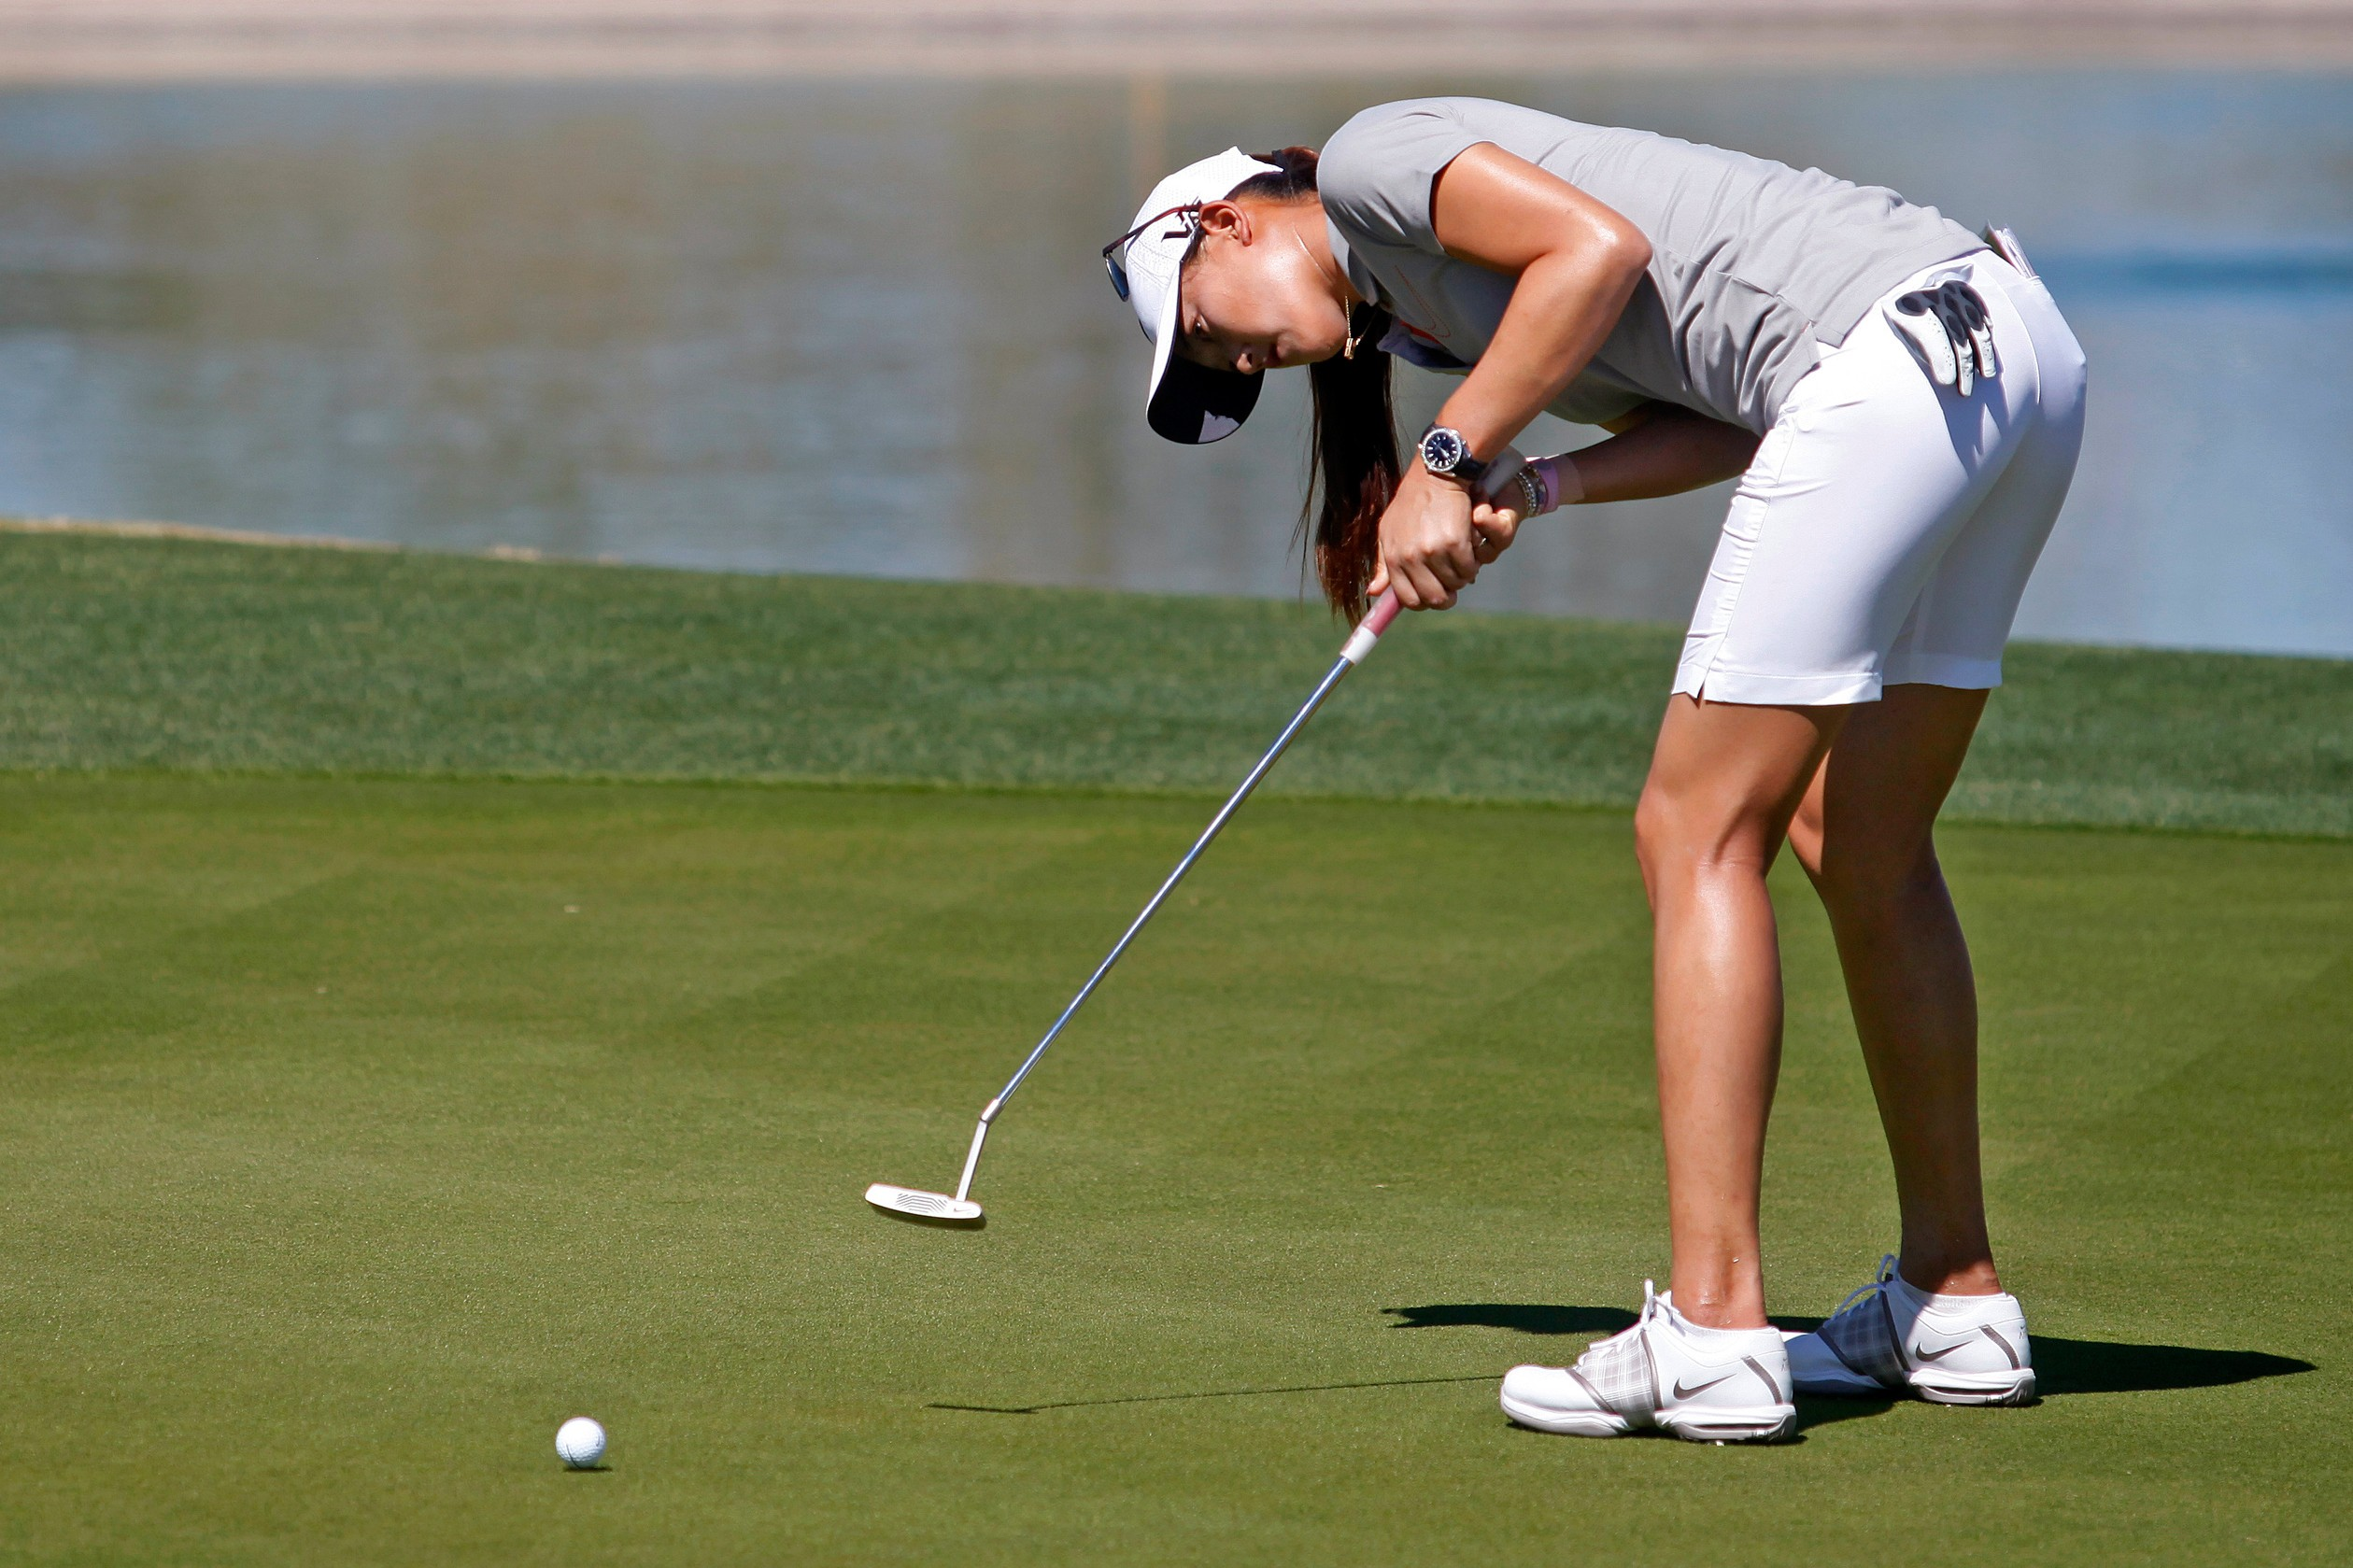 Do you know that 40% of your total score come from putts?